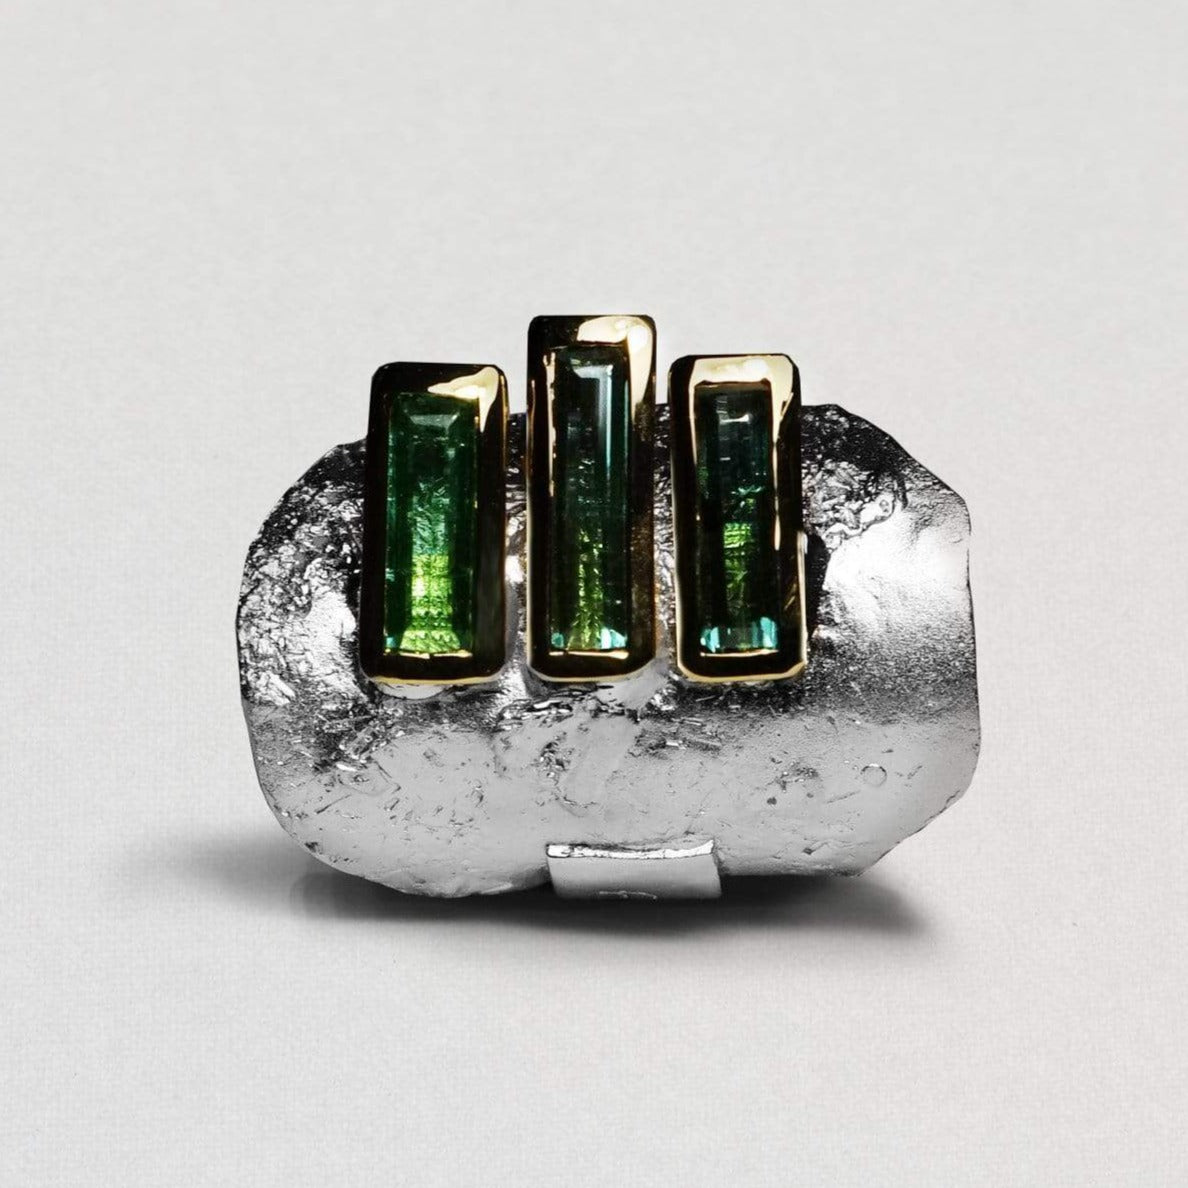 Meiden Ring, Exclusive, Gold, Rhodium, silver, spo-disabled, StoneColor:Green, Style:Everyday, Tourmaline Ring